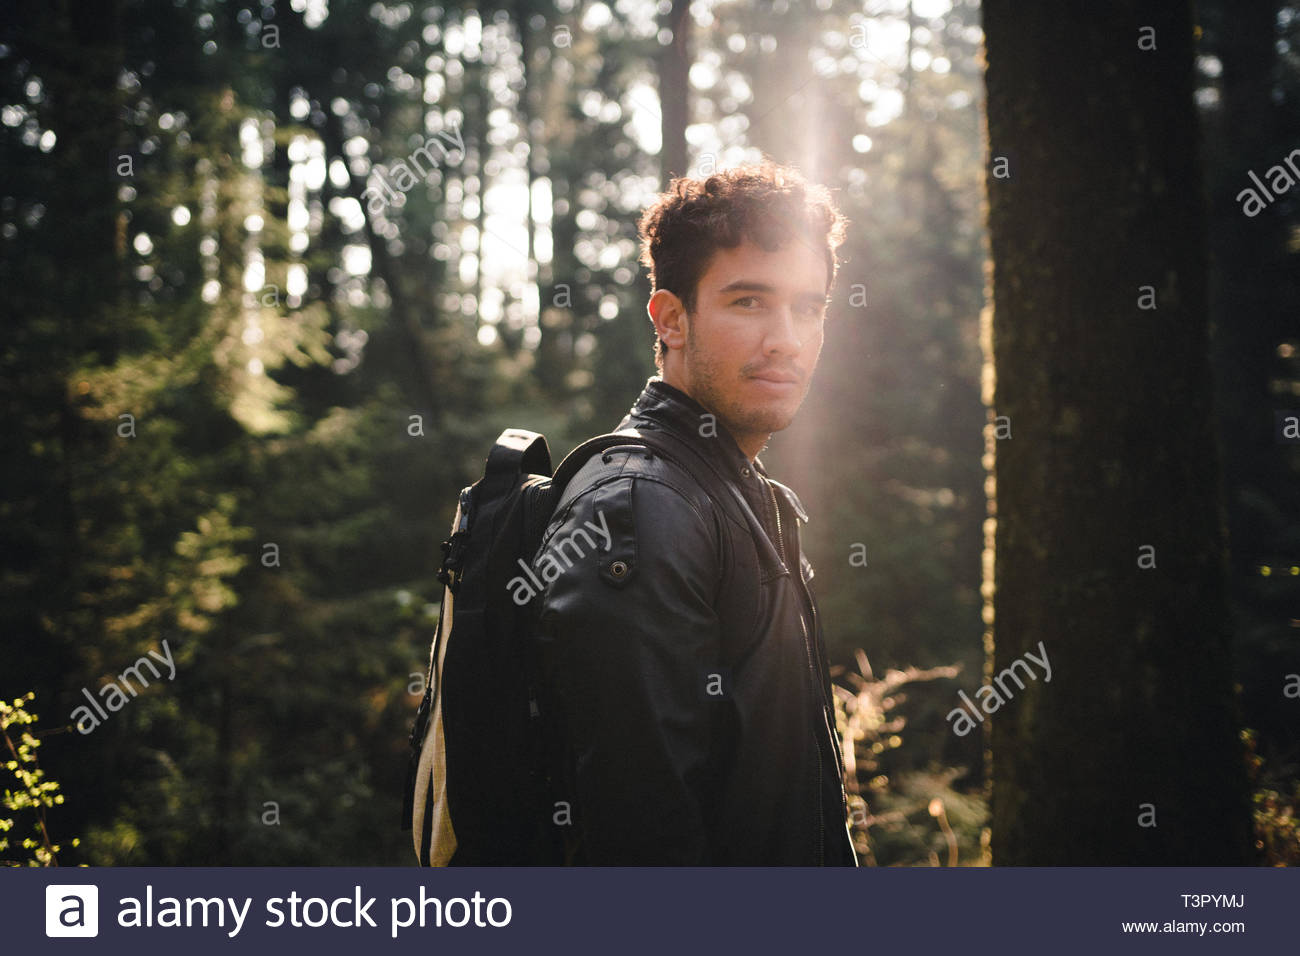 man standing in the middle of forest - Stock Image